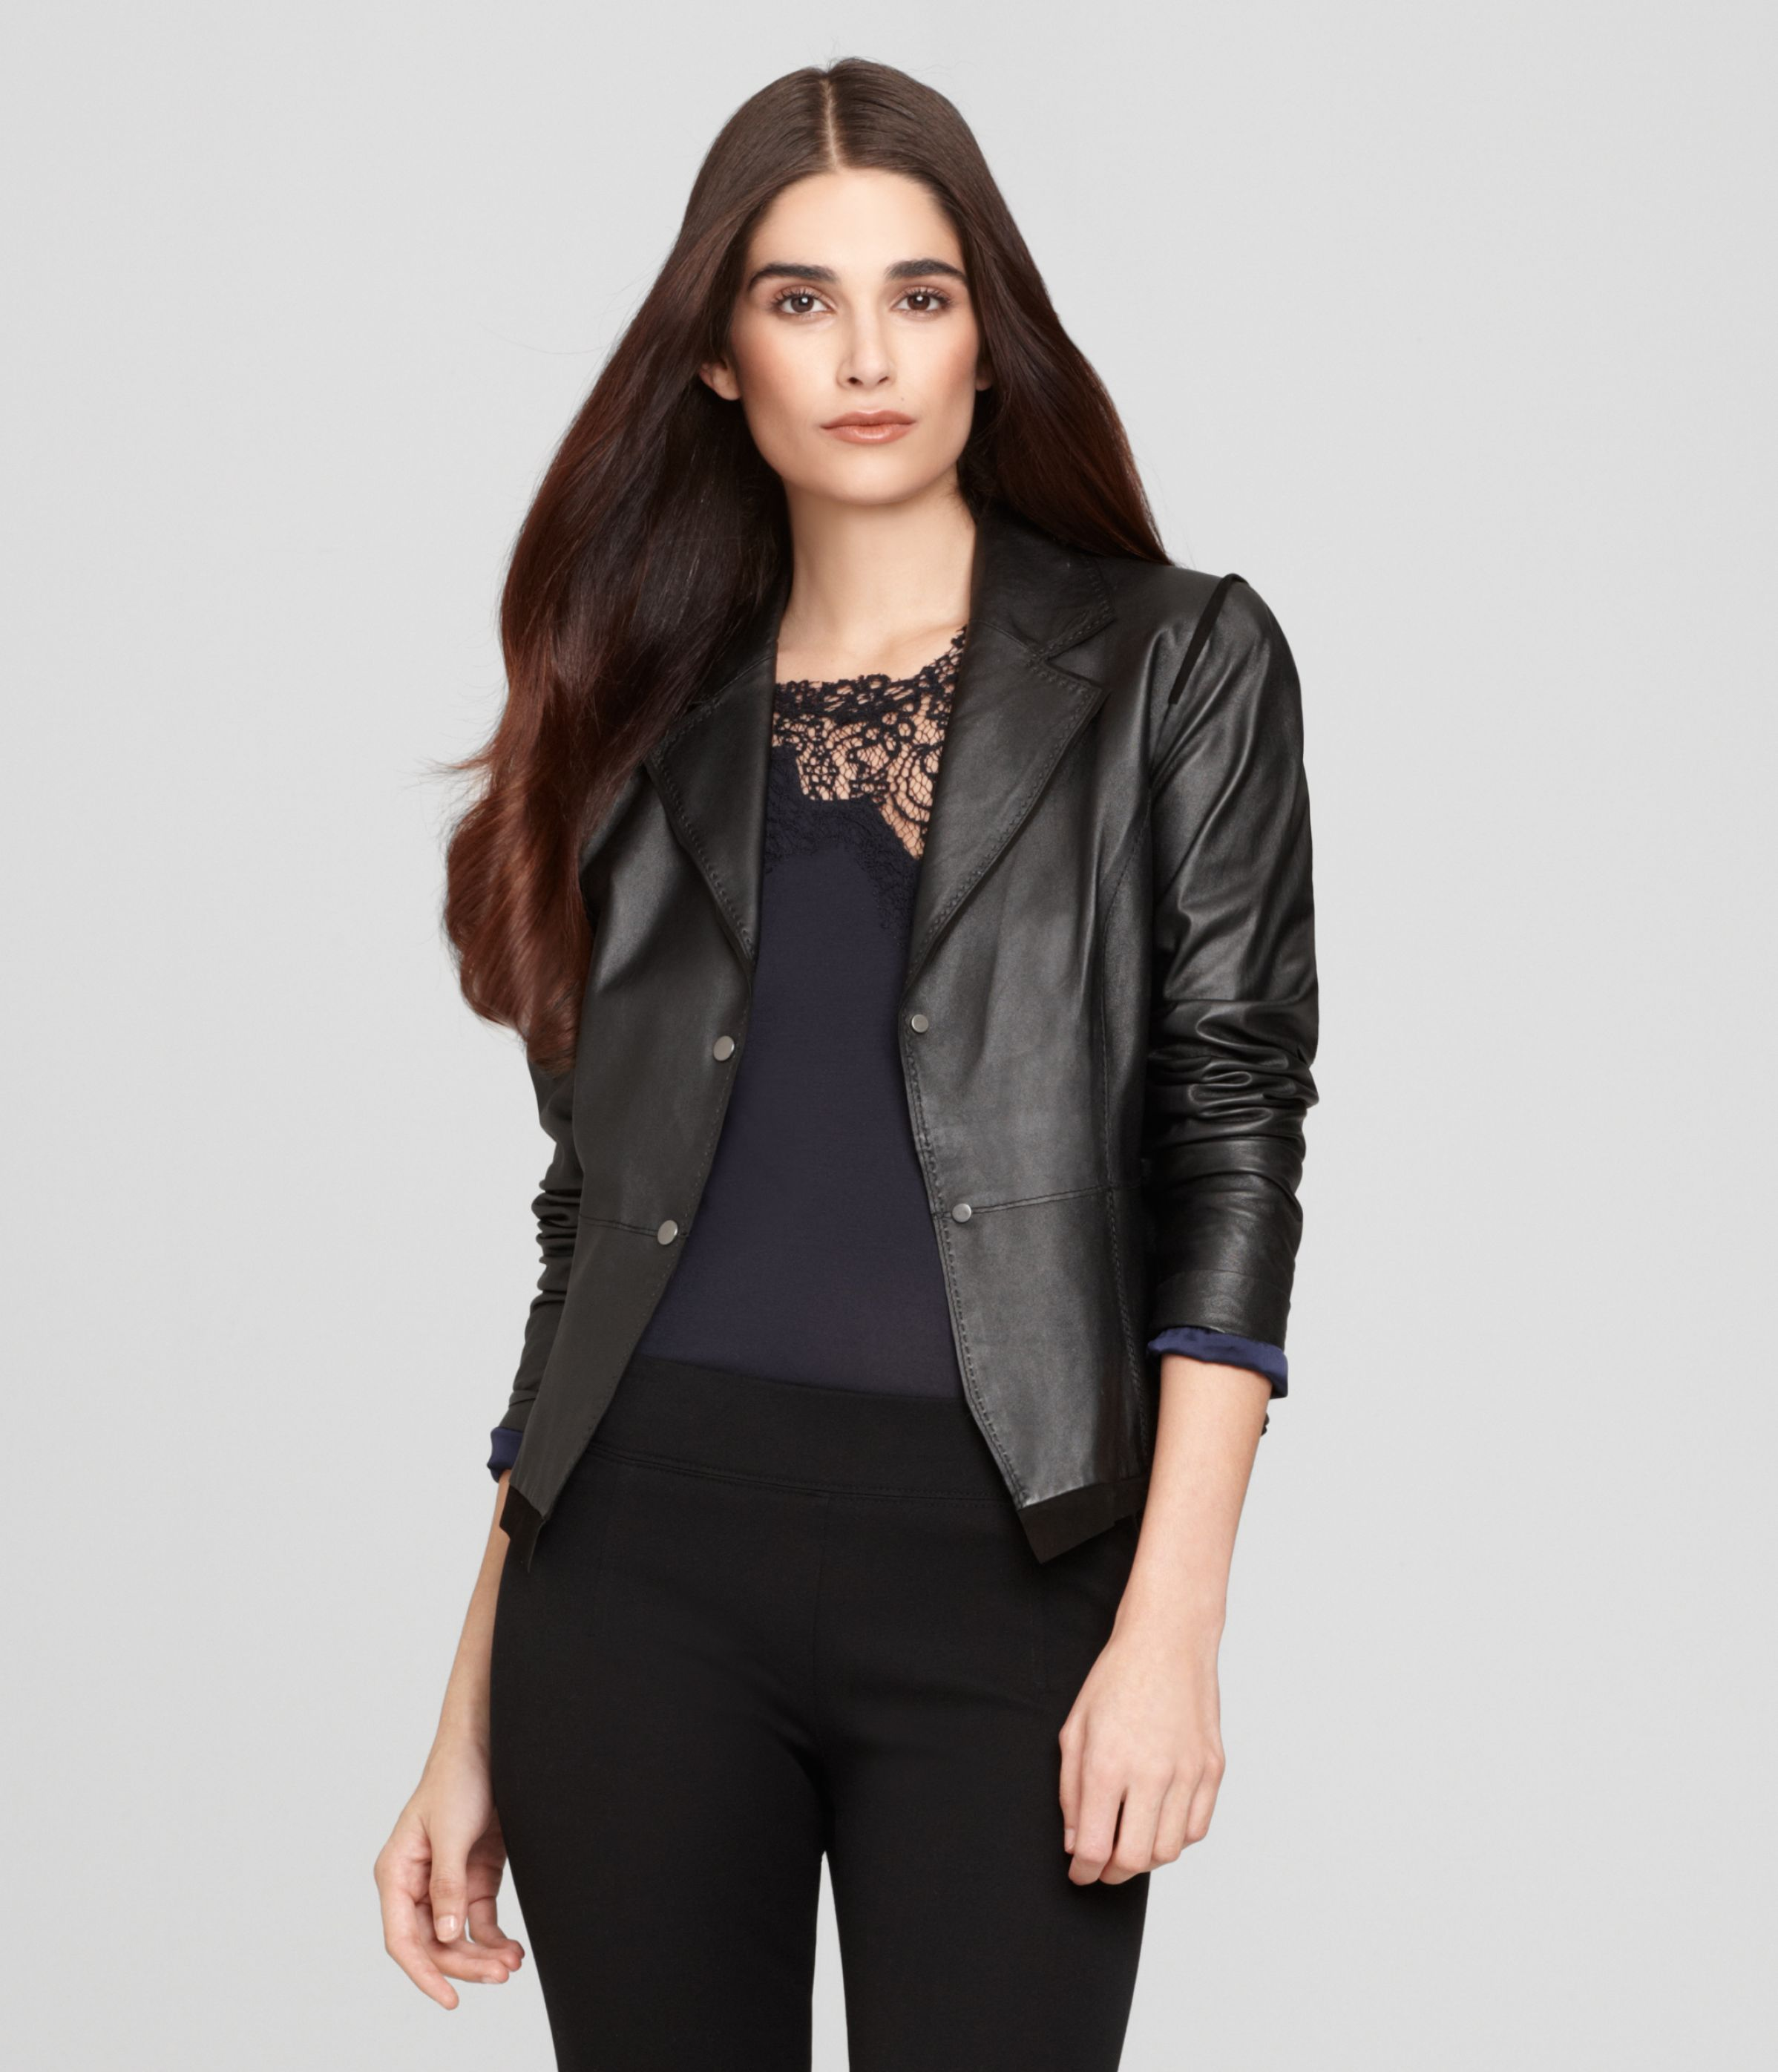 The ANETTA JACKET by Elie Tahari